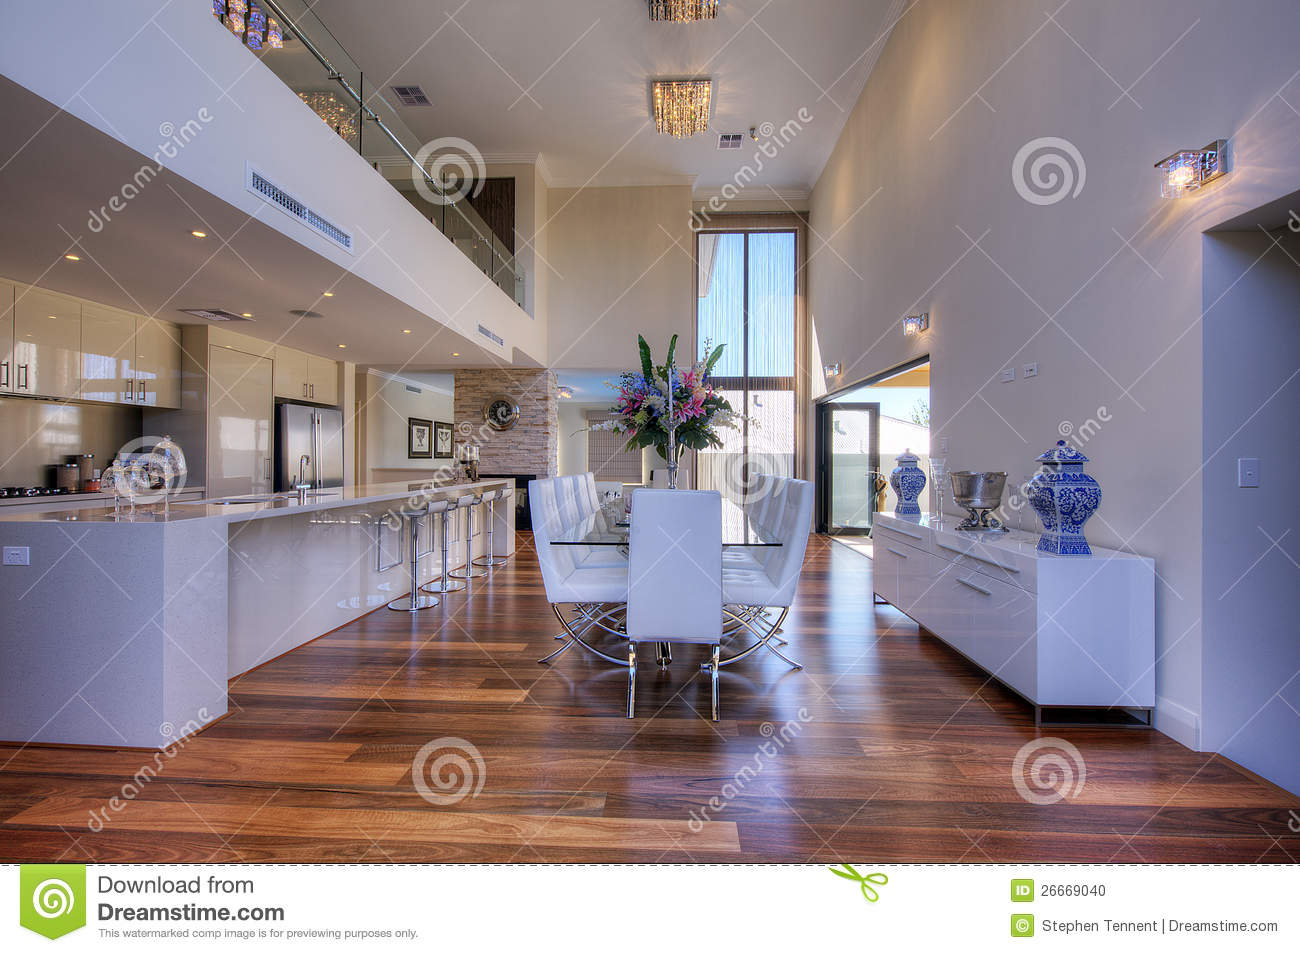 Cuisine open plan moderne luxueuse photo stock   image: 26669040